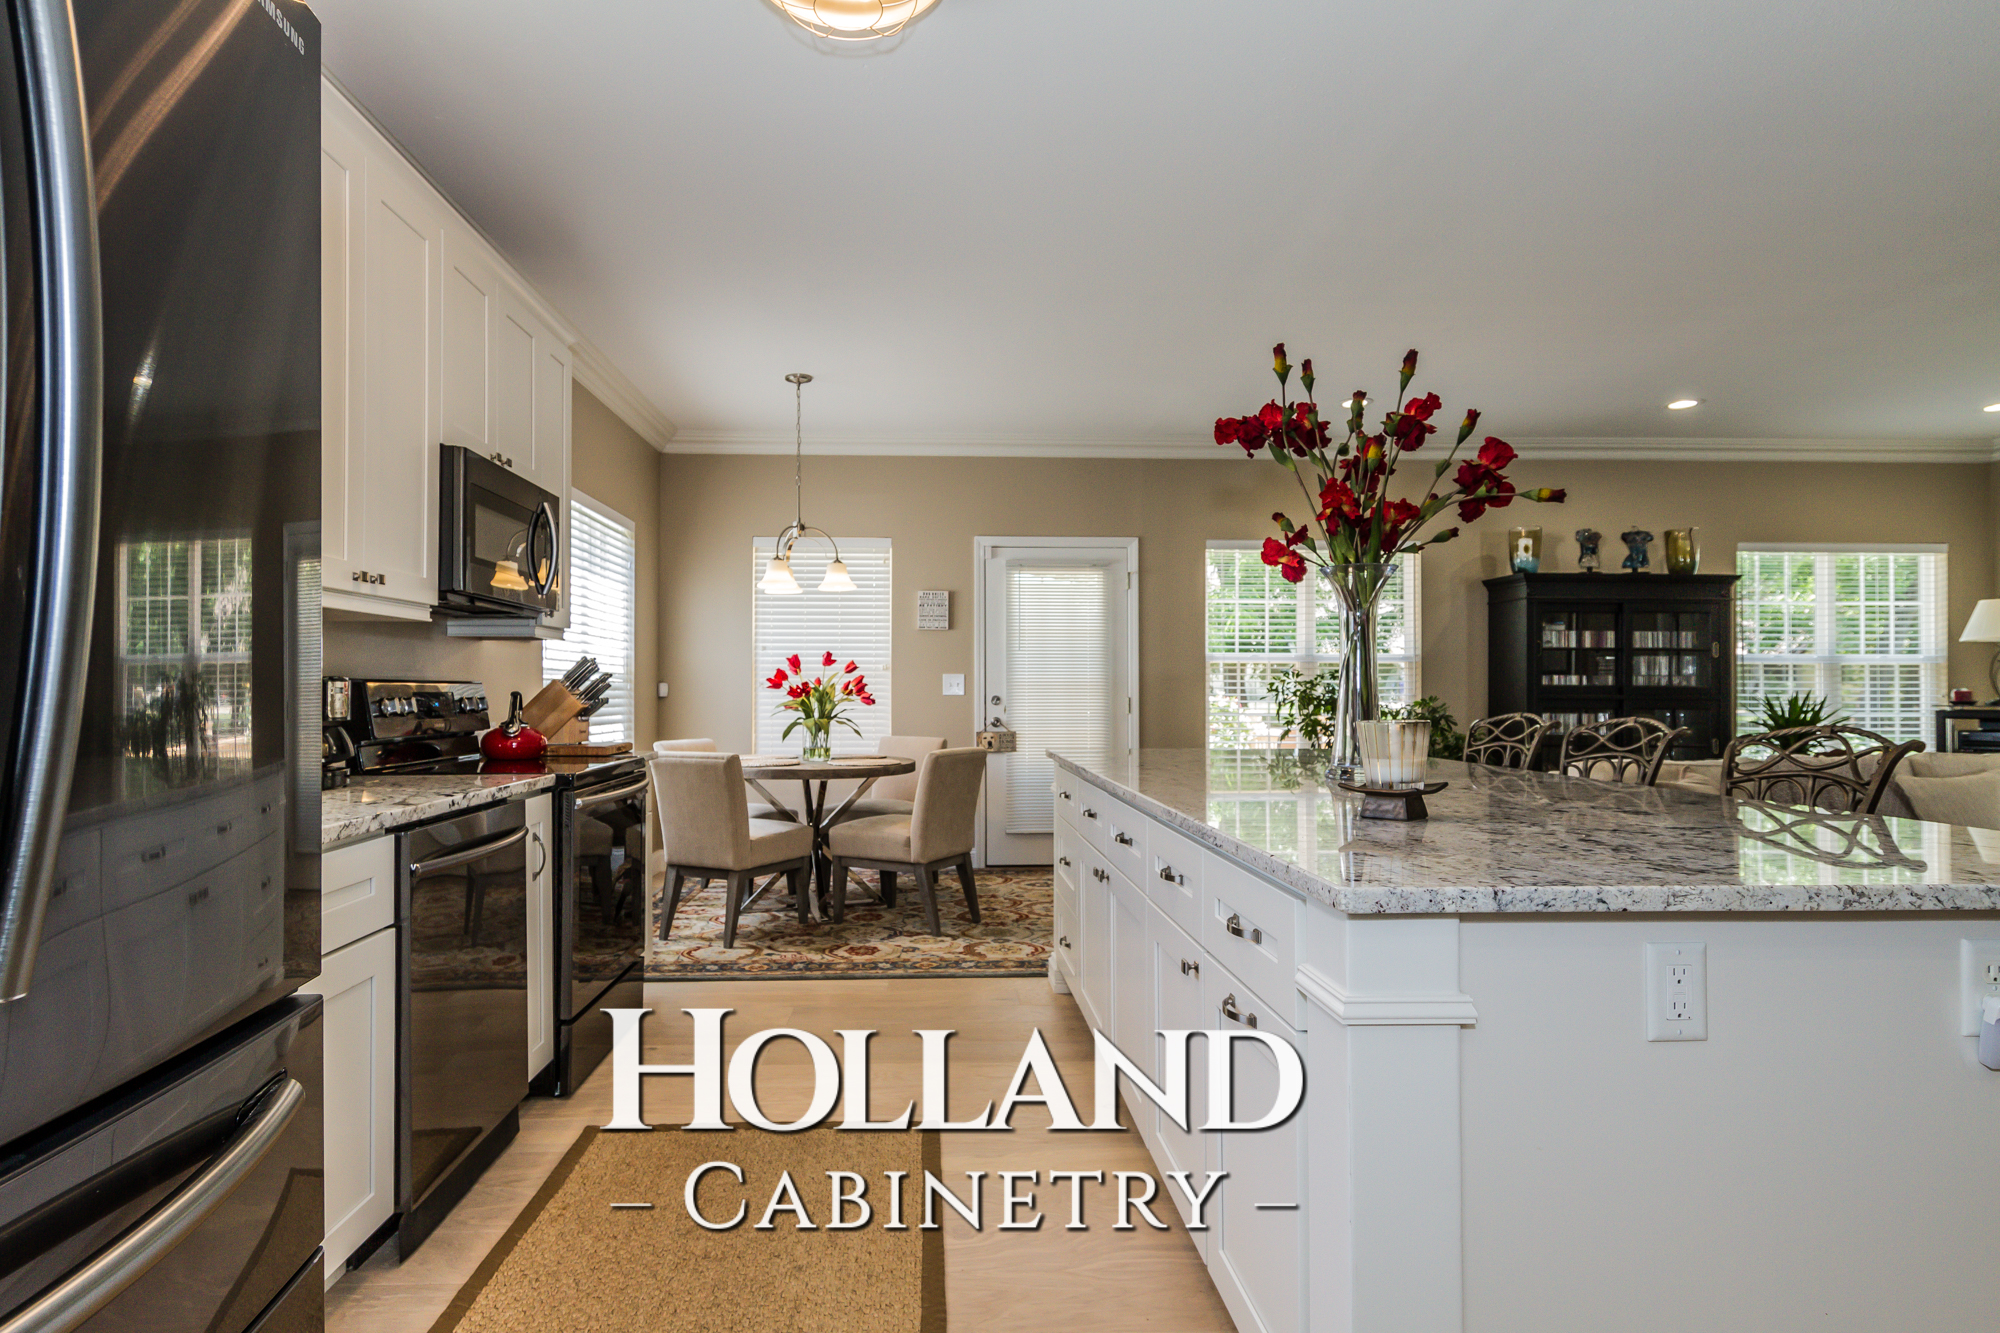 Holland-Cabinetry-Kitchen-Cabinets-12.jpg